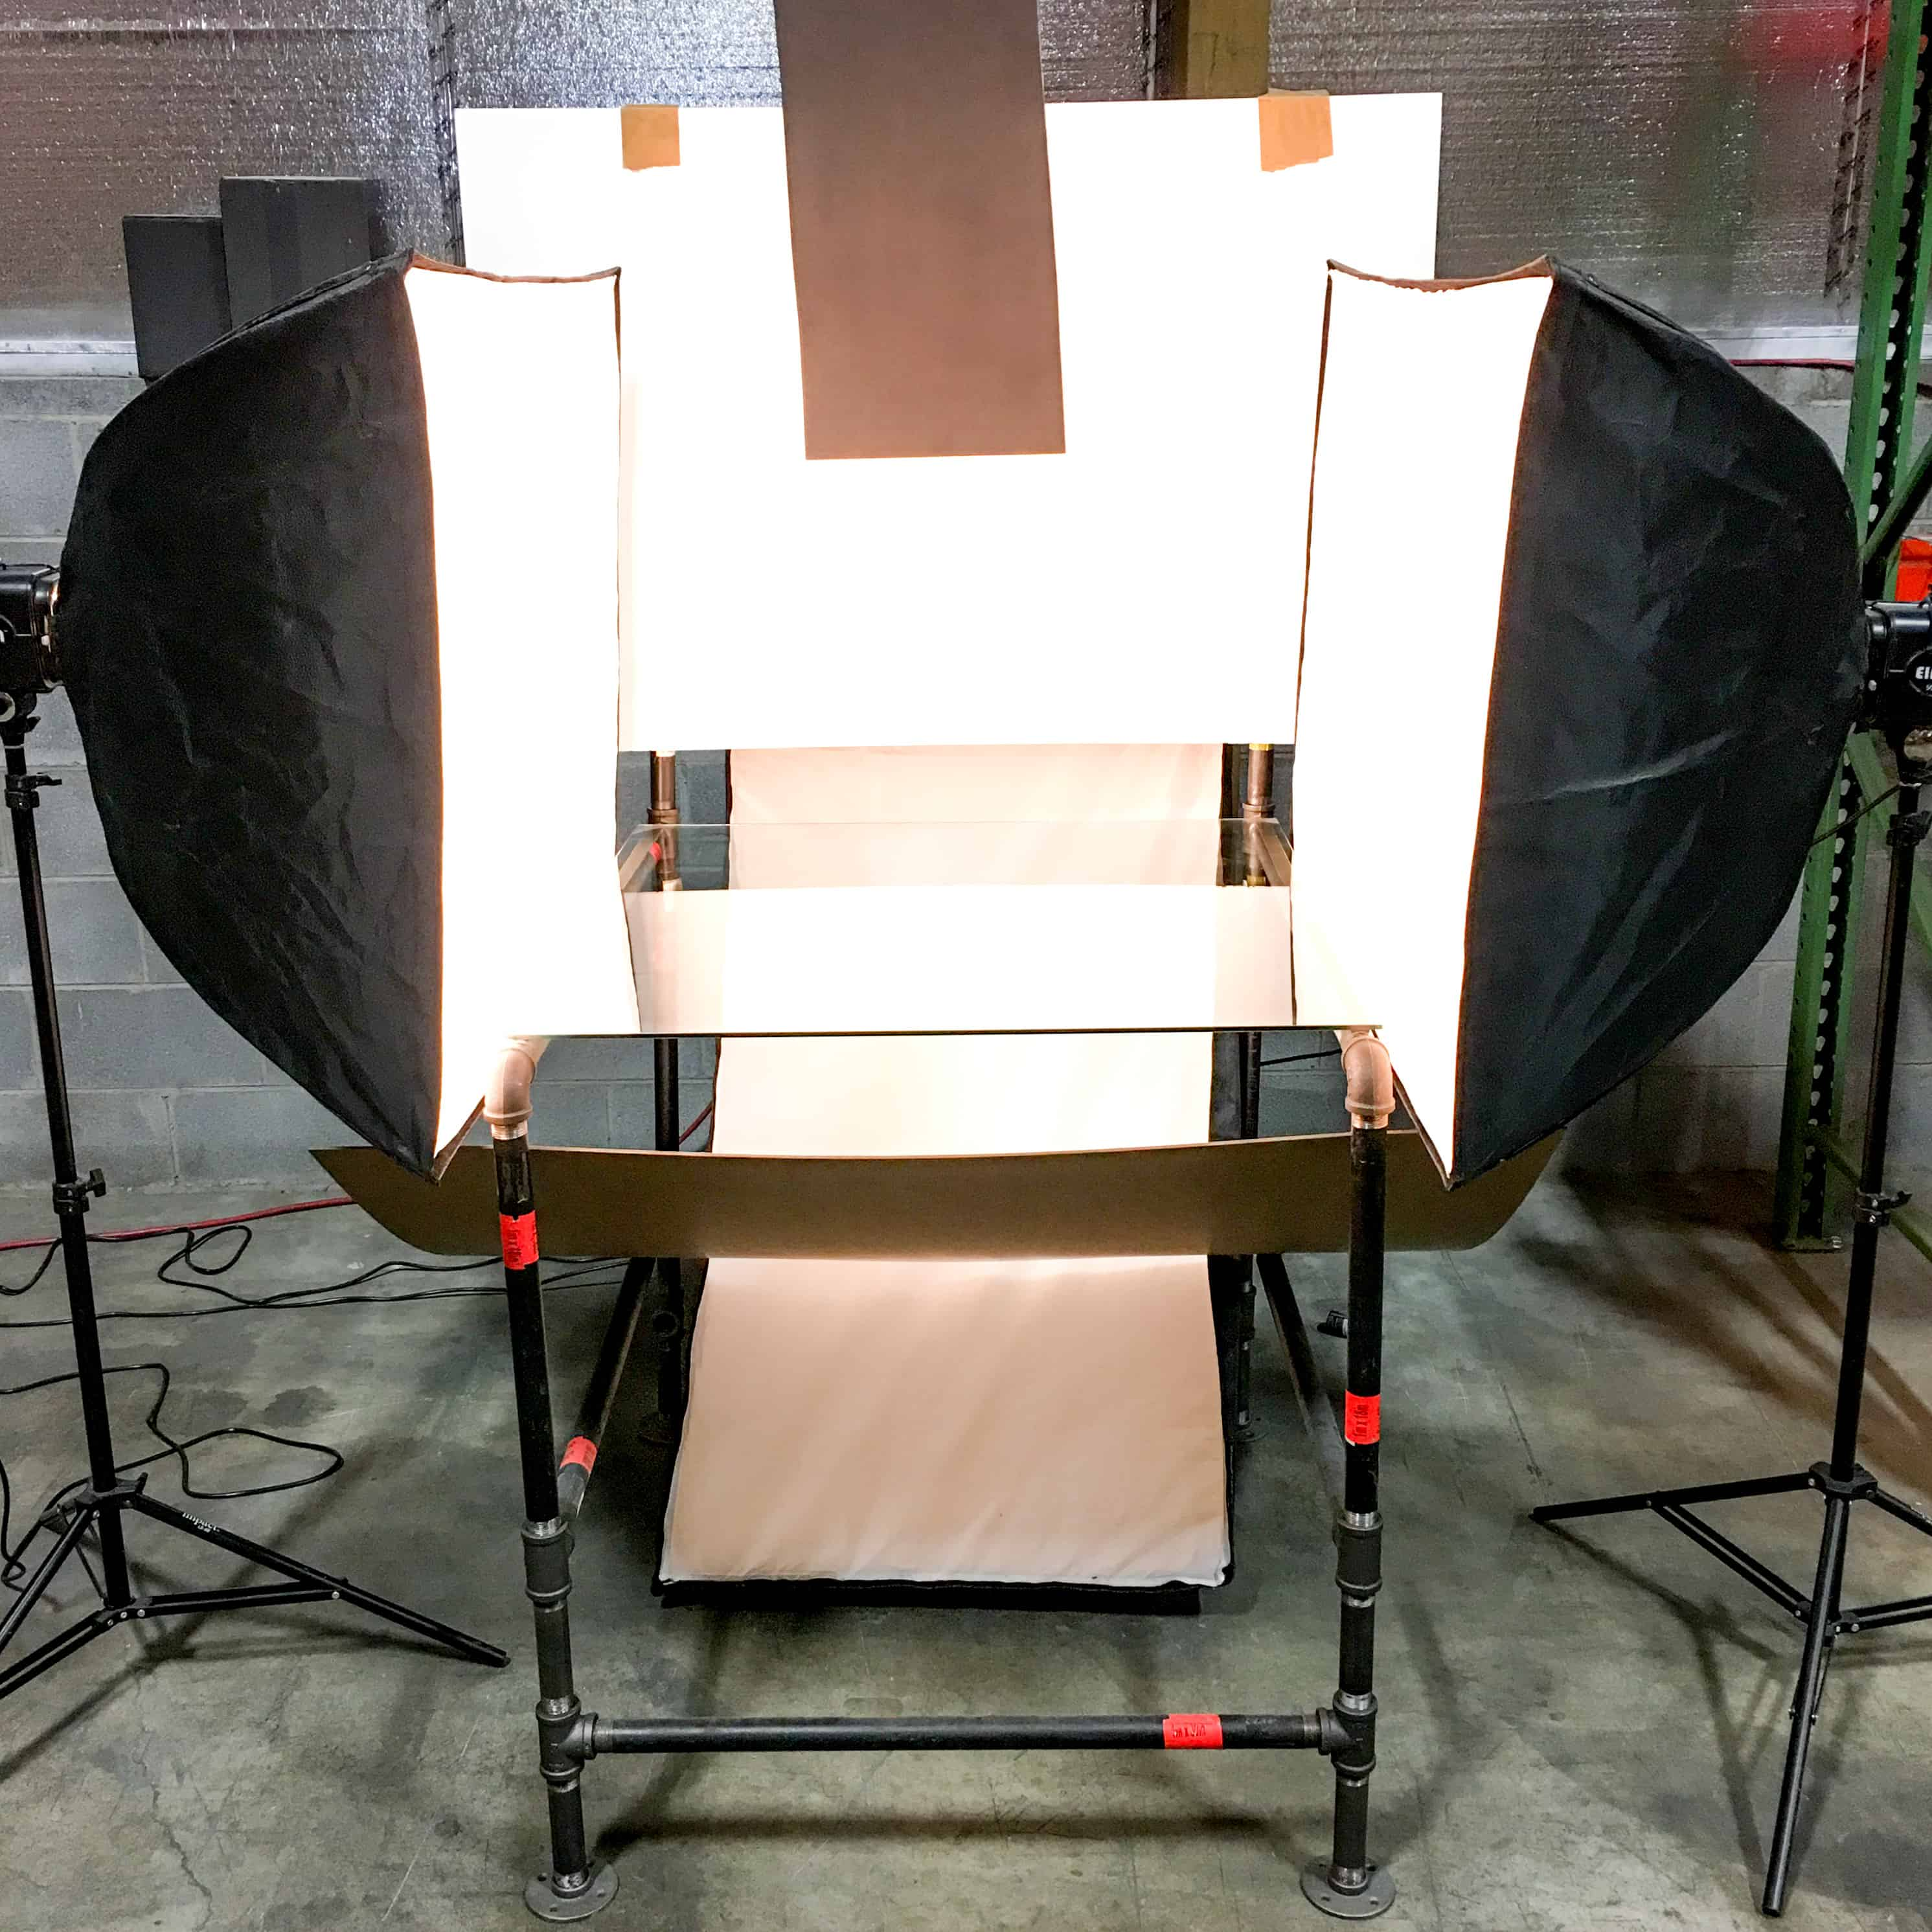 A typical DIY photo table setup and lighting elements.